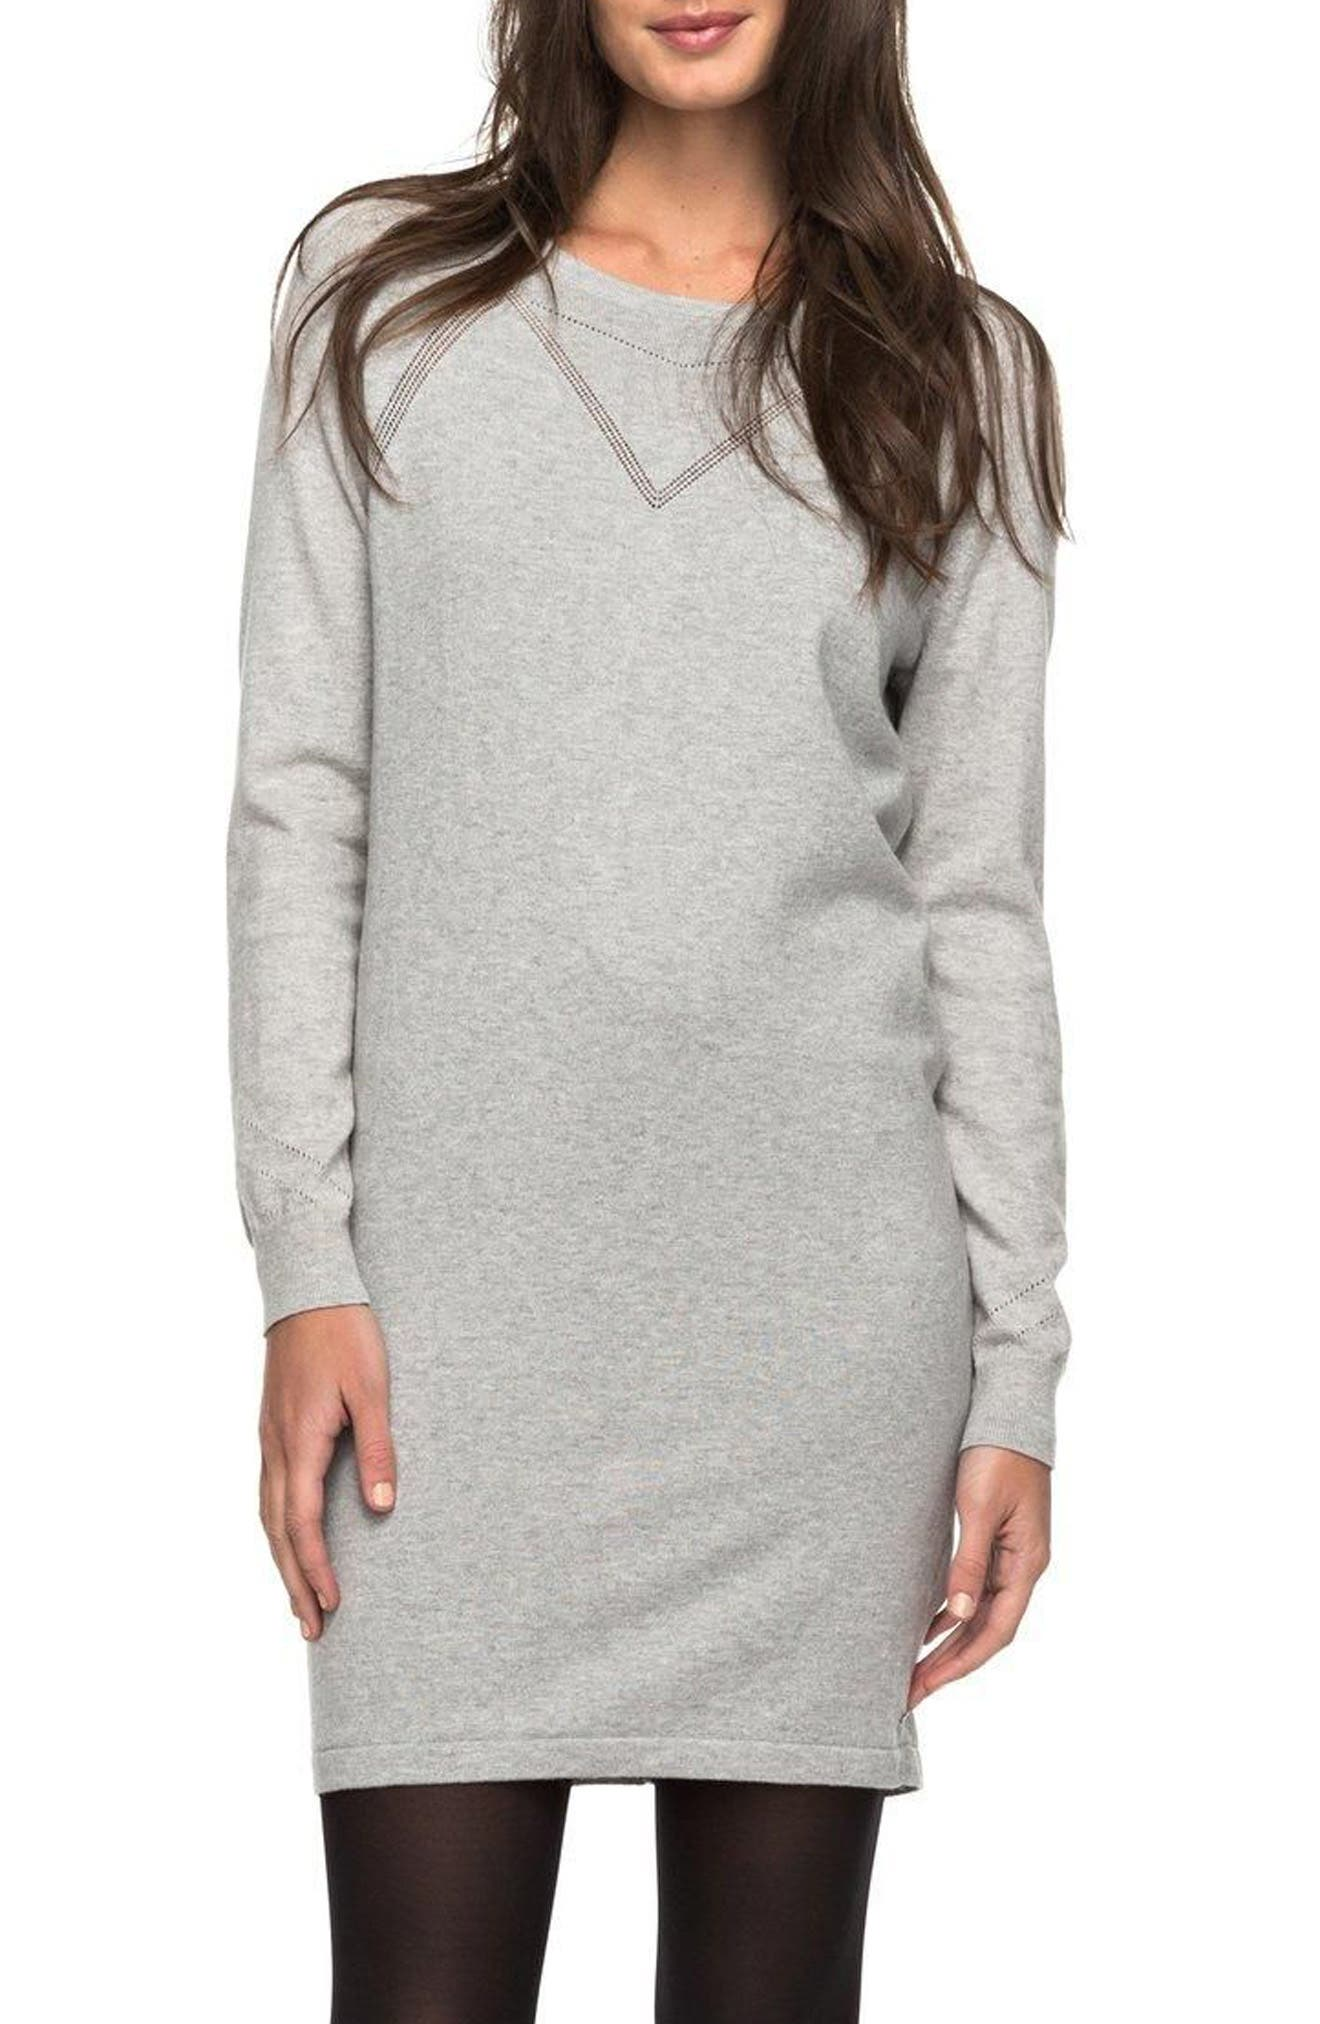 Winter Story Sweater Dress,                             Main thumbnail 1, color,                             037